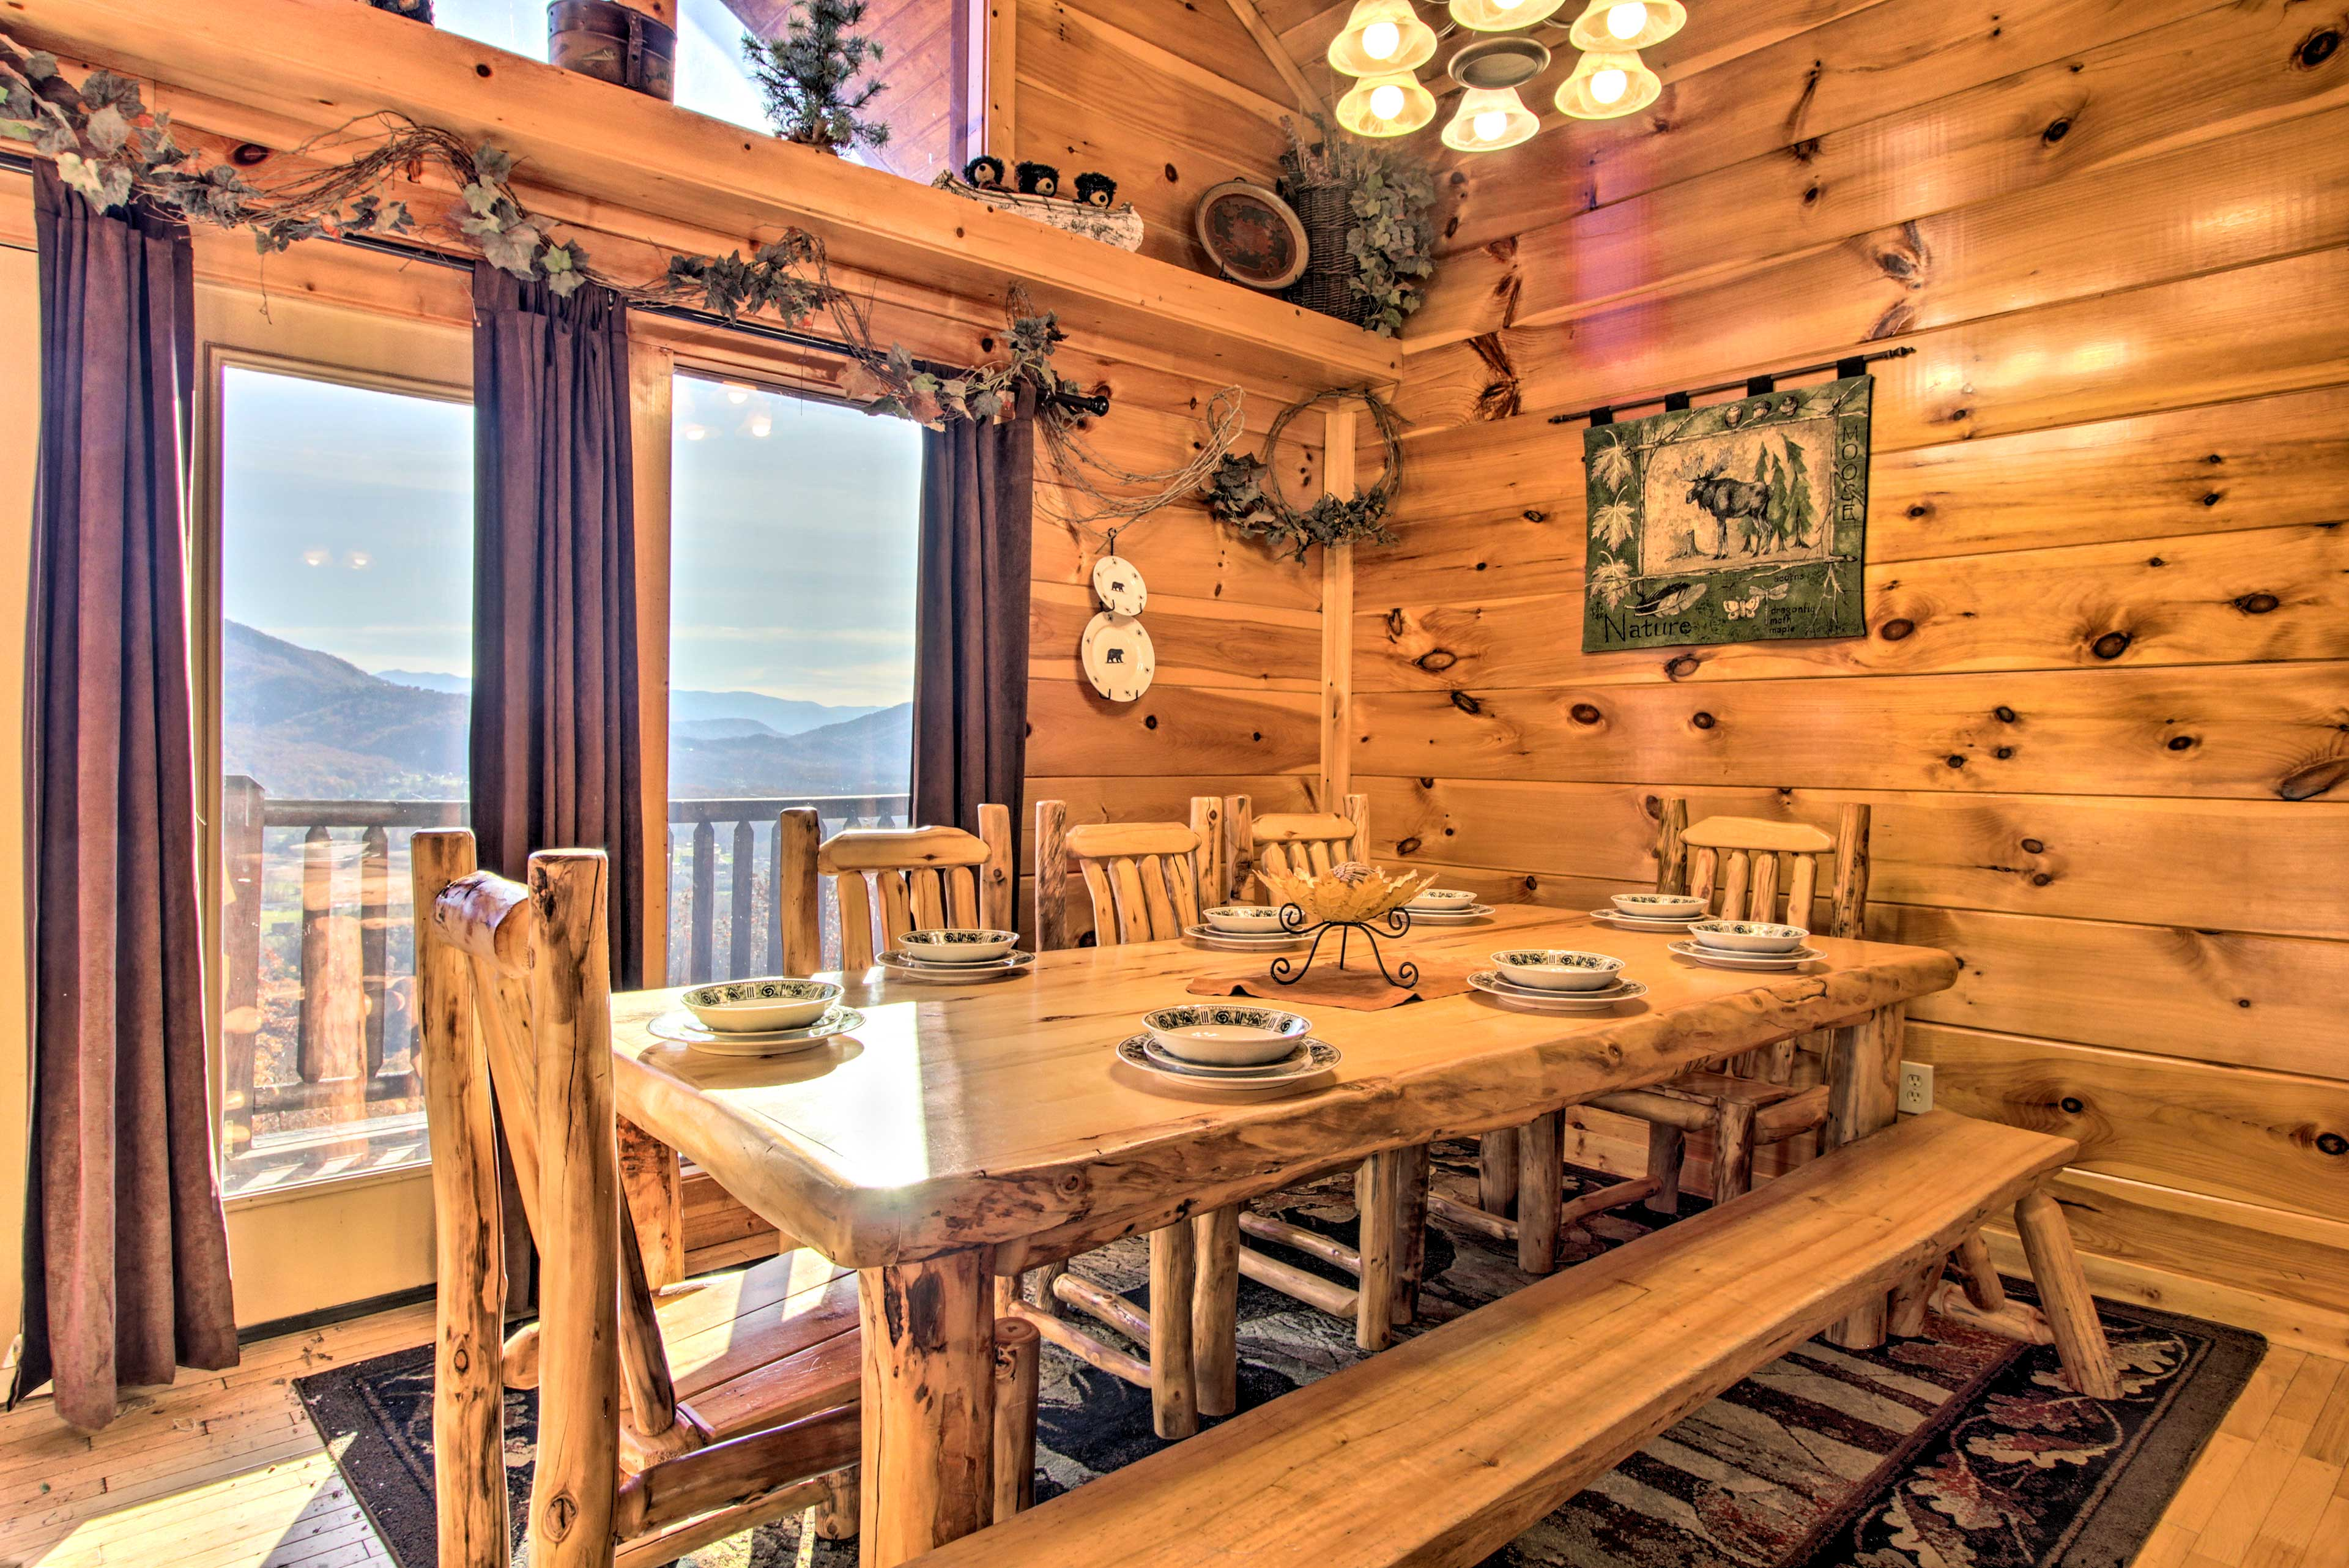 Share good food and company at one of the 2 handcrafted Aspen log dining tables.